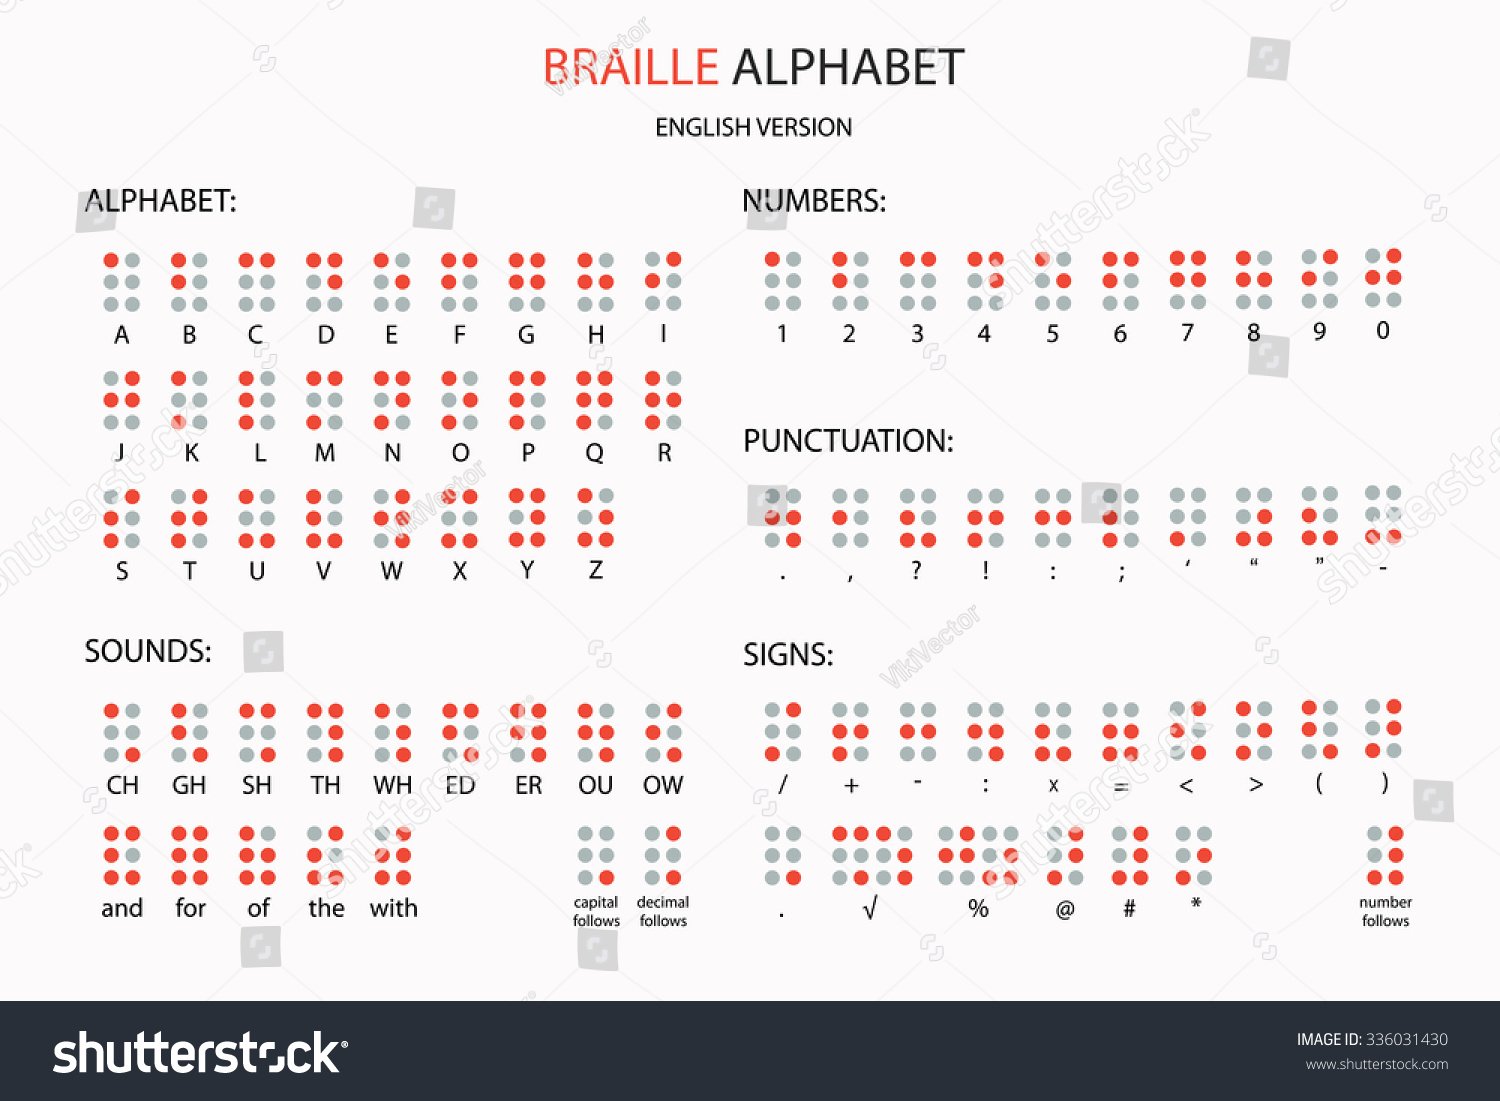 How to write numbers in braille